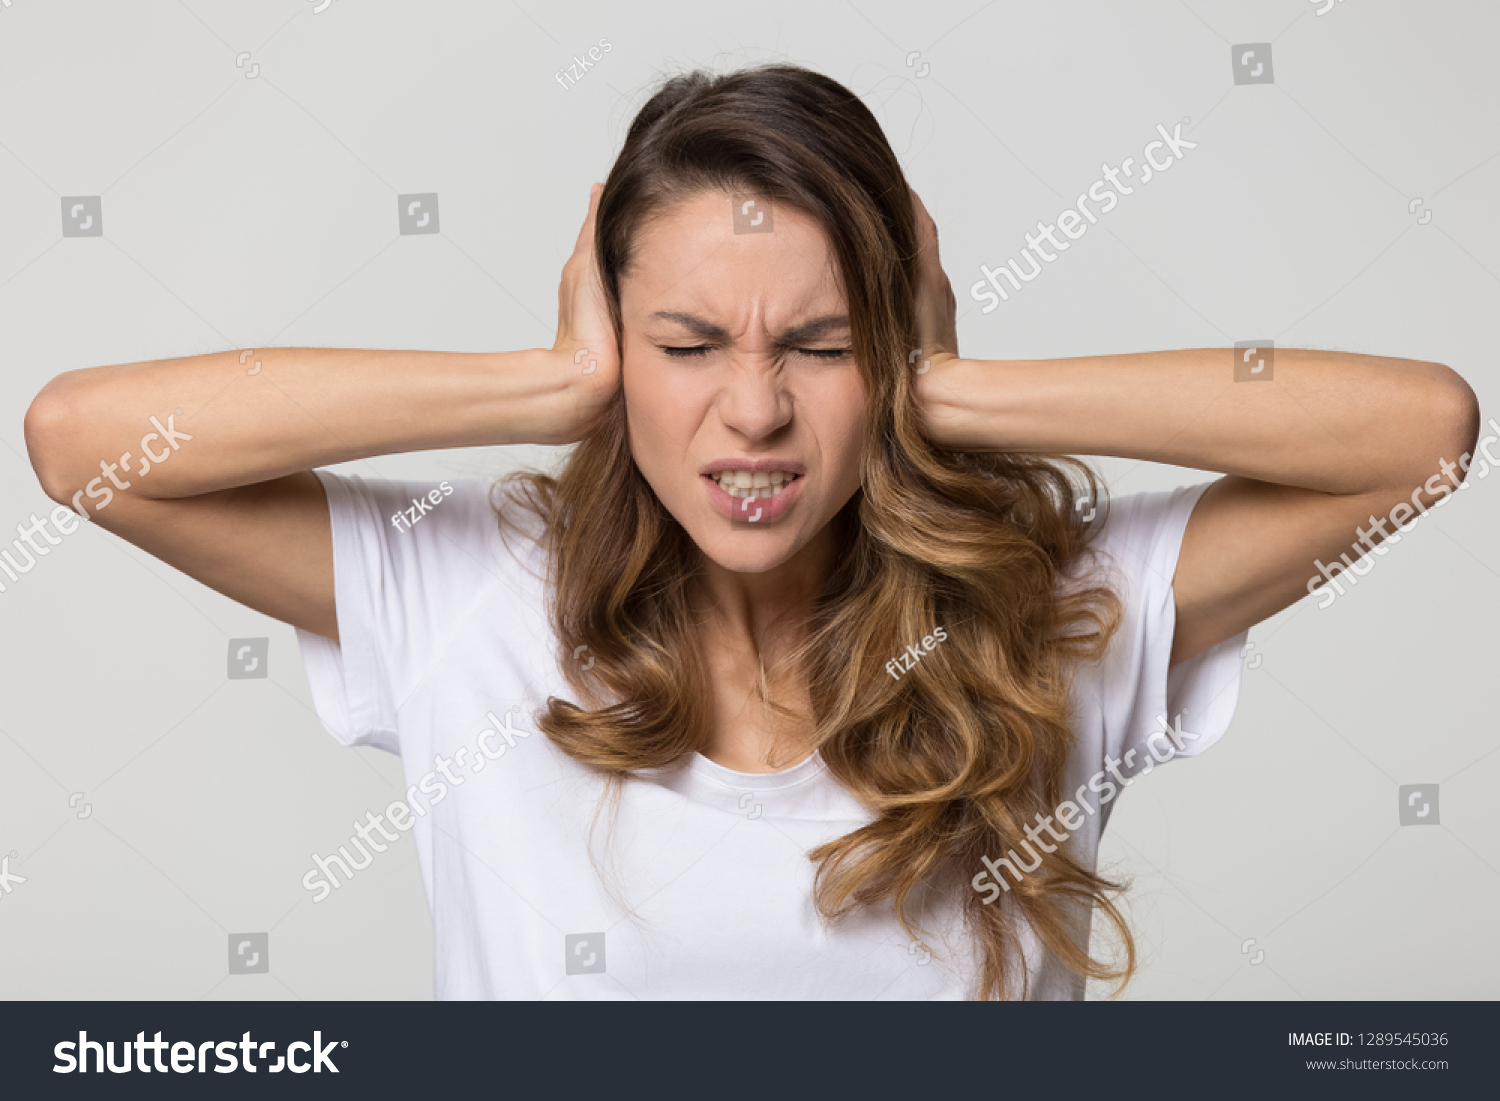 Annoyed stressed woman cover ears feel hurt ear ache pain otitis suffer from loud noise sound headache, irritated stubborn girl deaf hear not listen to noisy music isolated on white studio background #1289545036